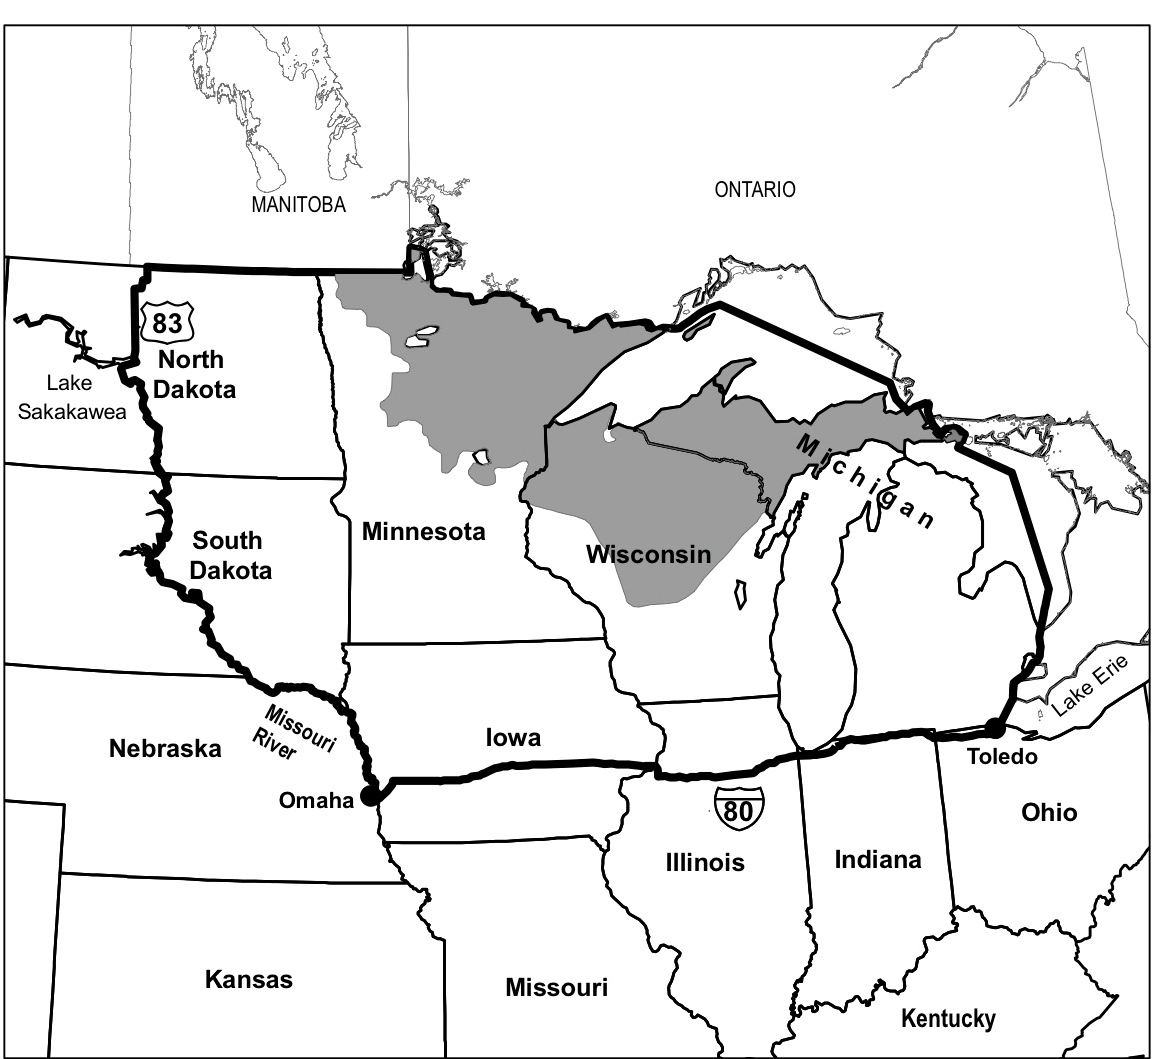 International Wolf Center Blog Archive Minnesota - Maps of the location of wolves in the us